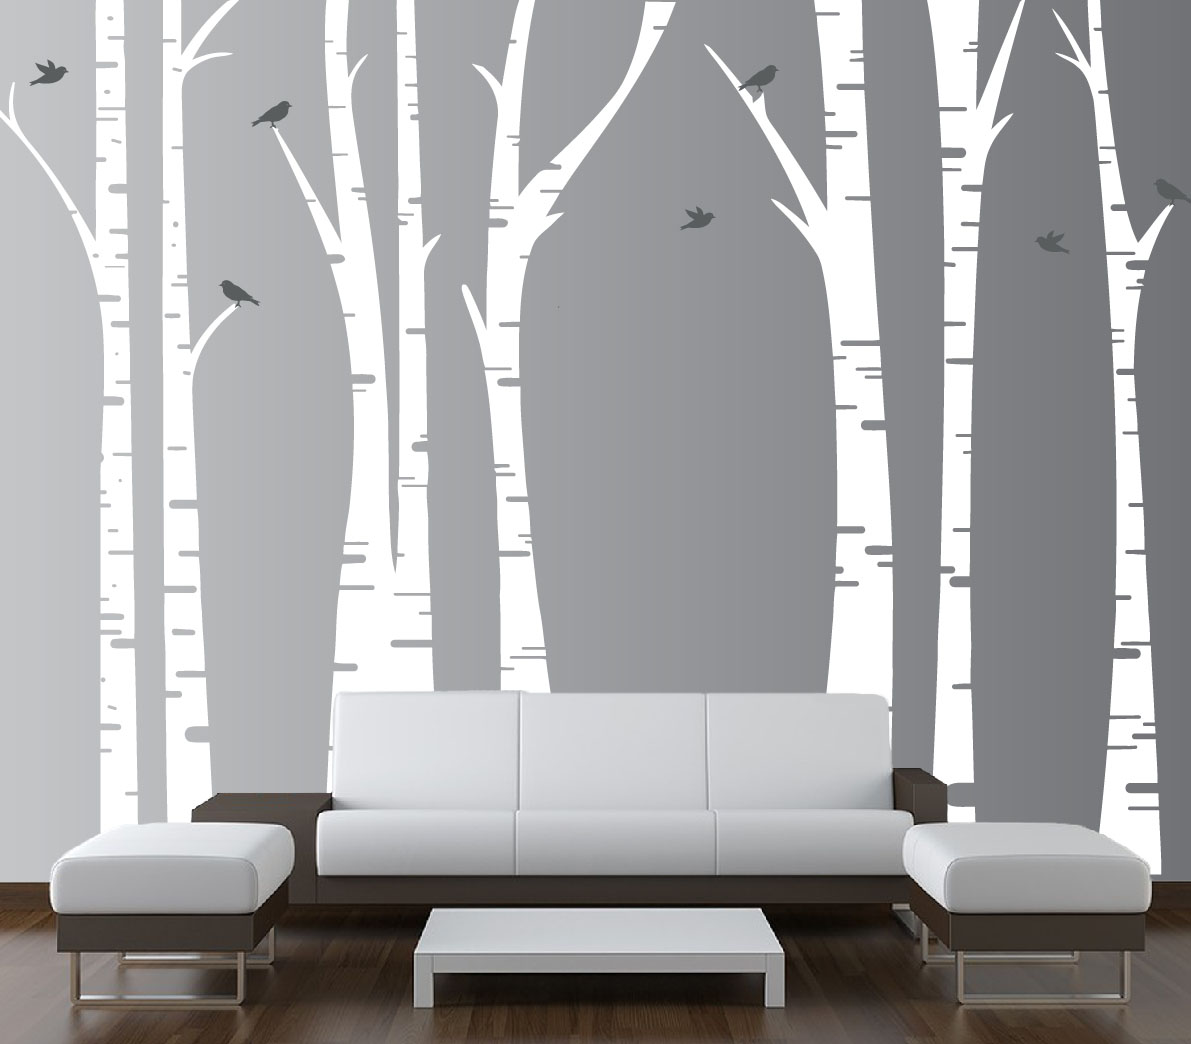 create your own living room set floral curtains for birch tree forest vinyl wall decal birds #1295 ...